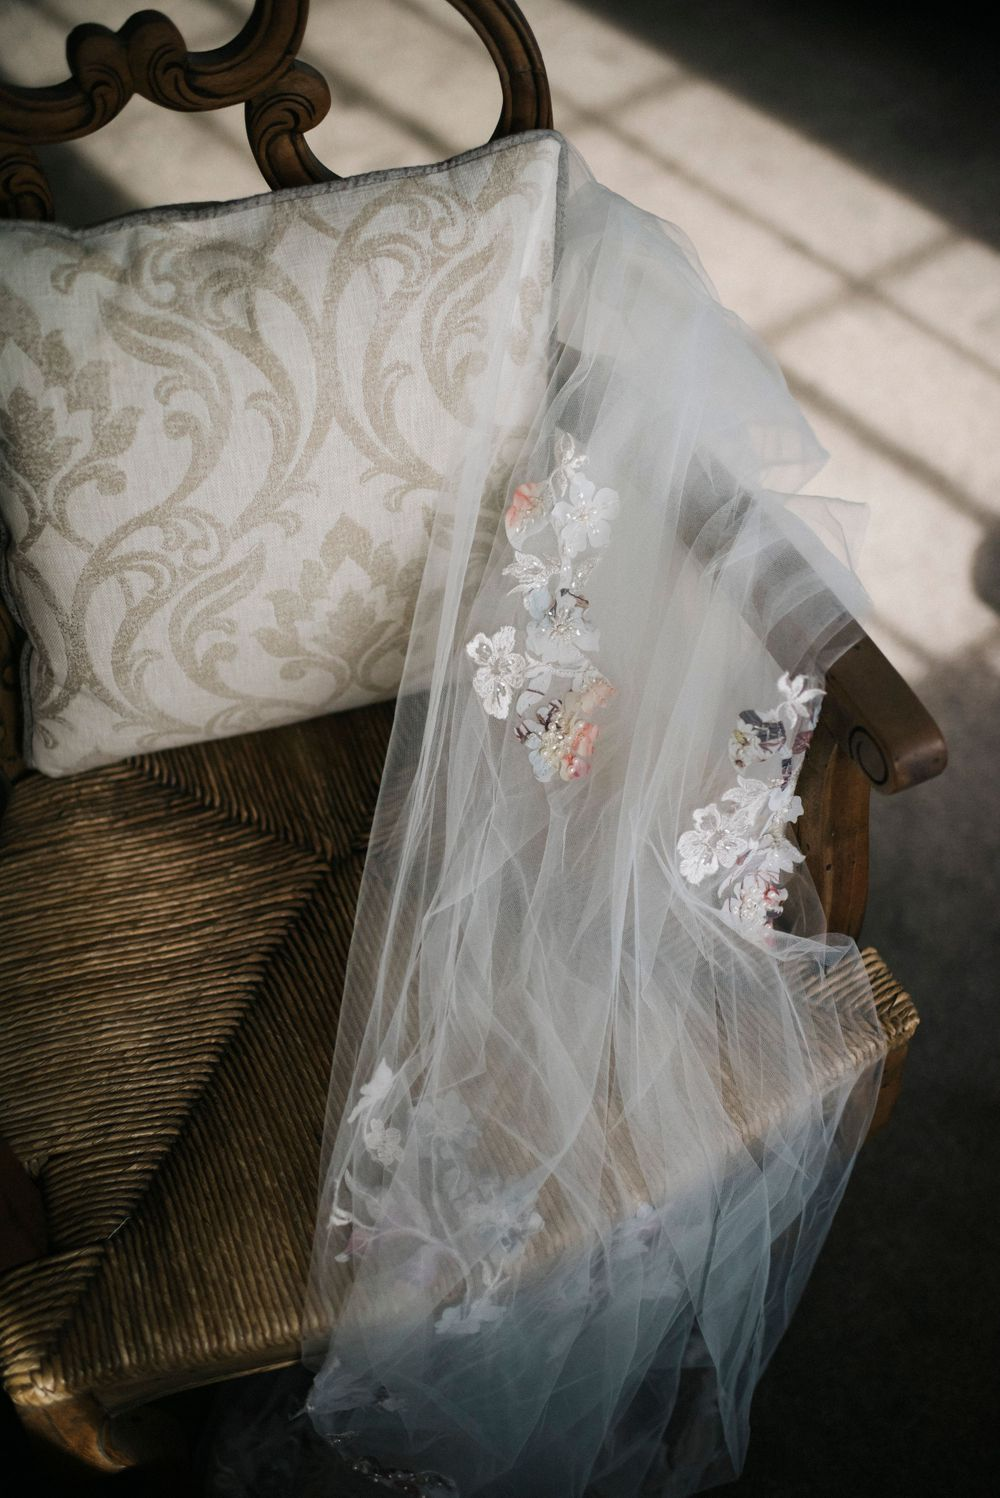 wedding veil, pretty wedding veil, wedding veil with extra detail, colourful wedding veil, eaves hall wedding